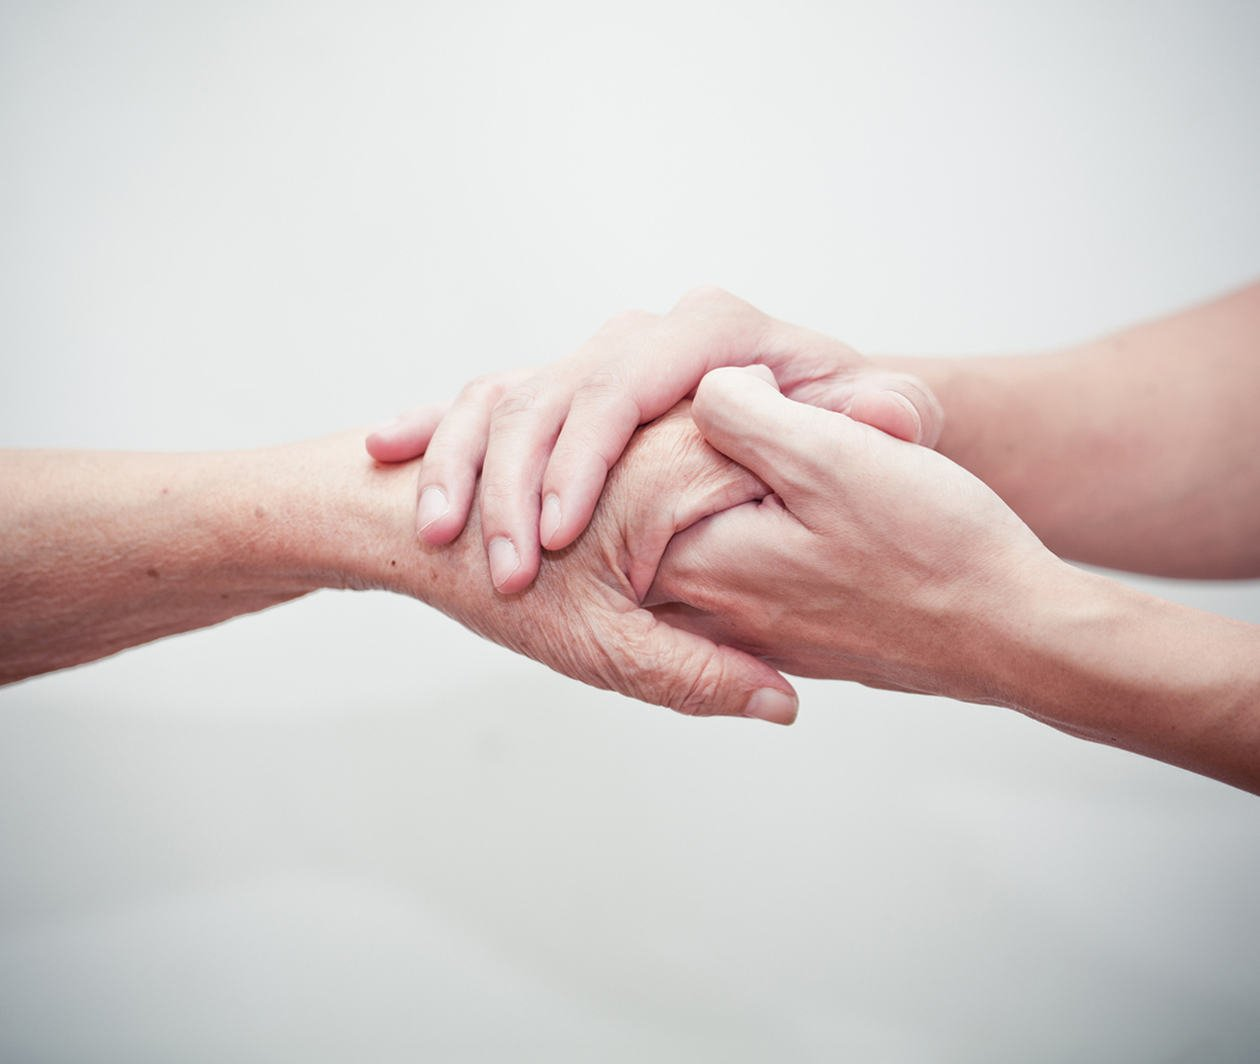 End-of-Life Care for People with Dementia